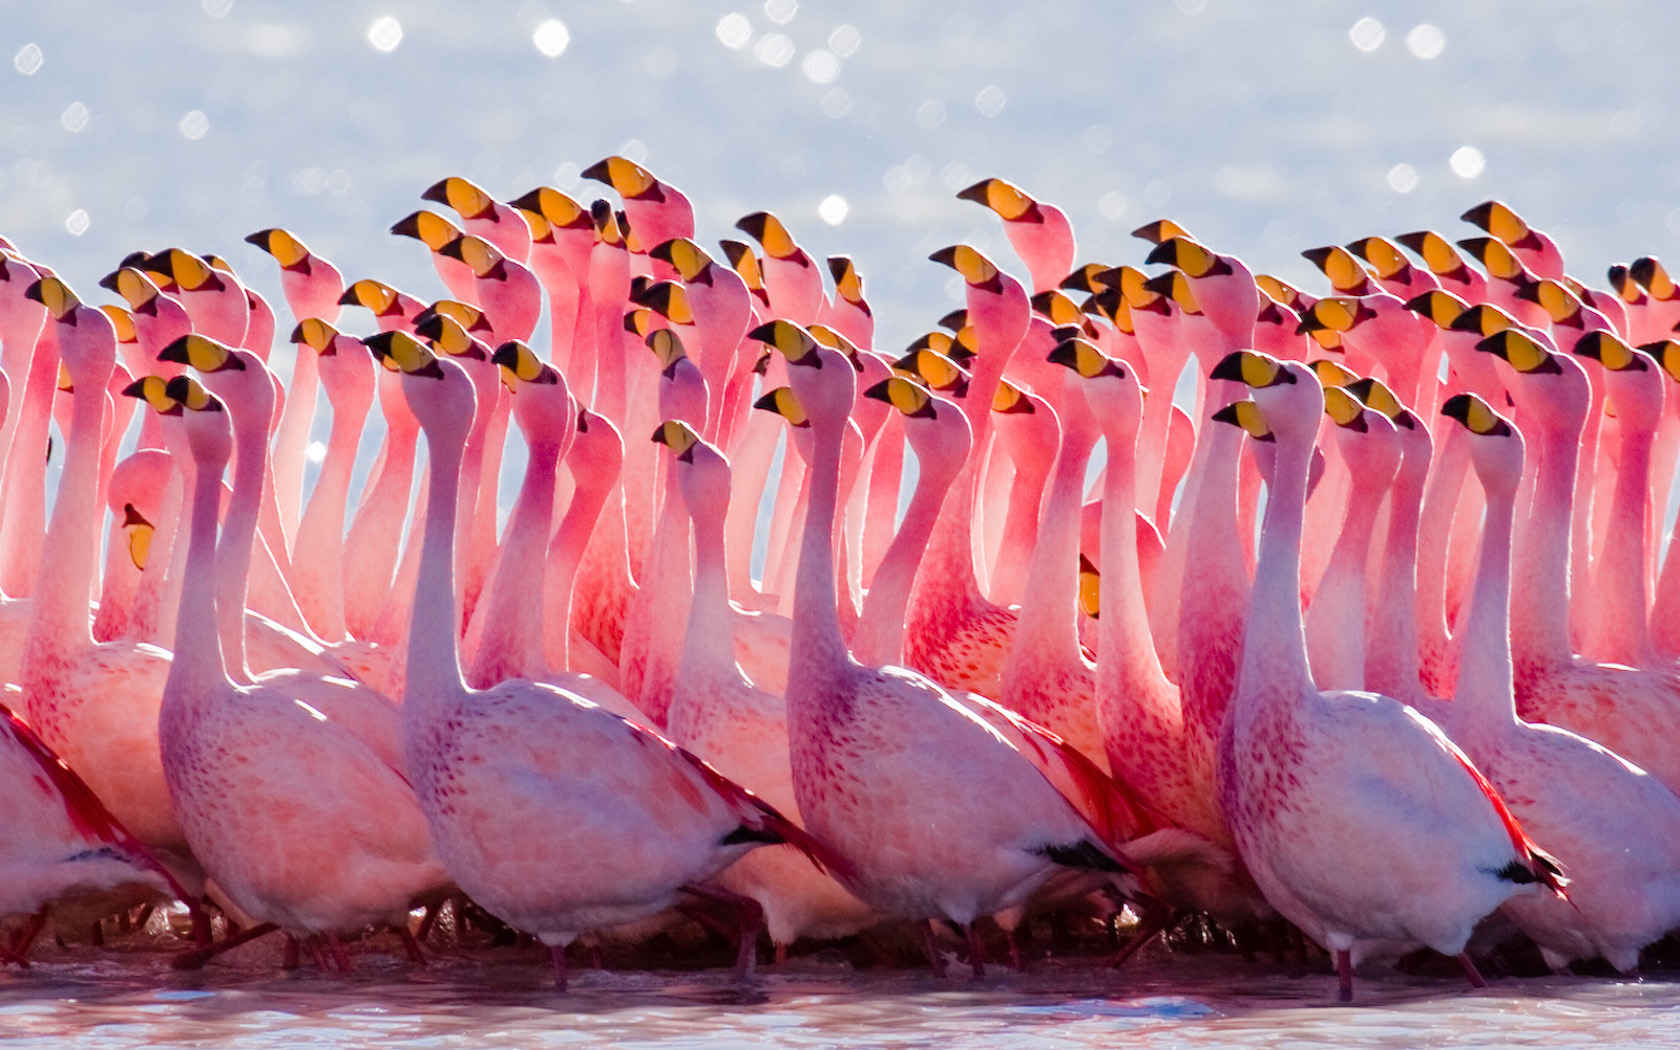 How to Live The Flamingo Life |Incorporating Flamingos Into Your Everyday Life